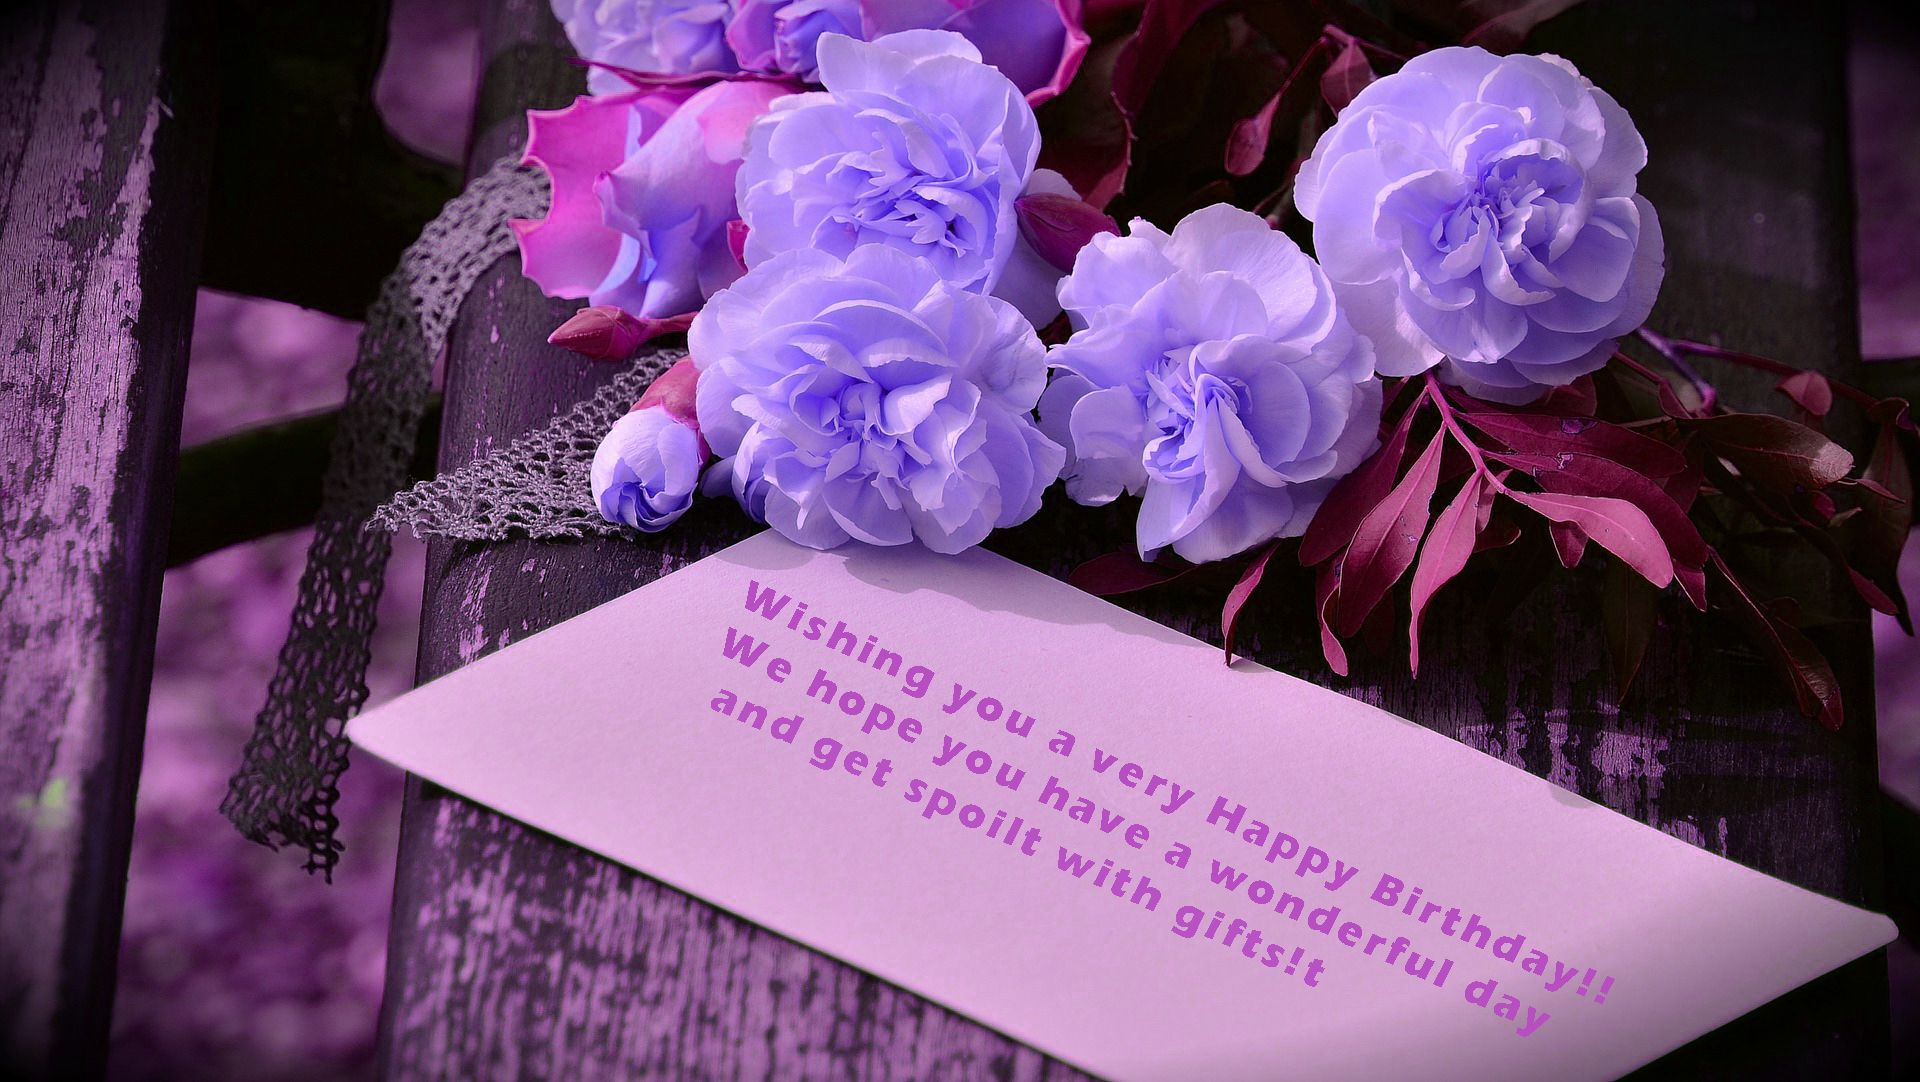 Birthday card messages birthday messages pinterest messages birthday card messages izmirmasajfo Images